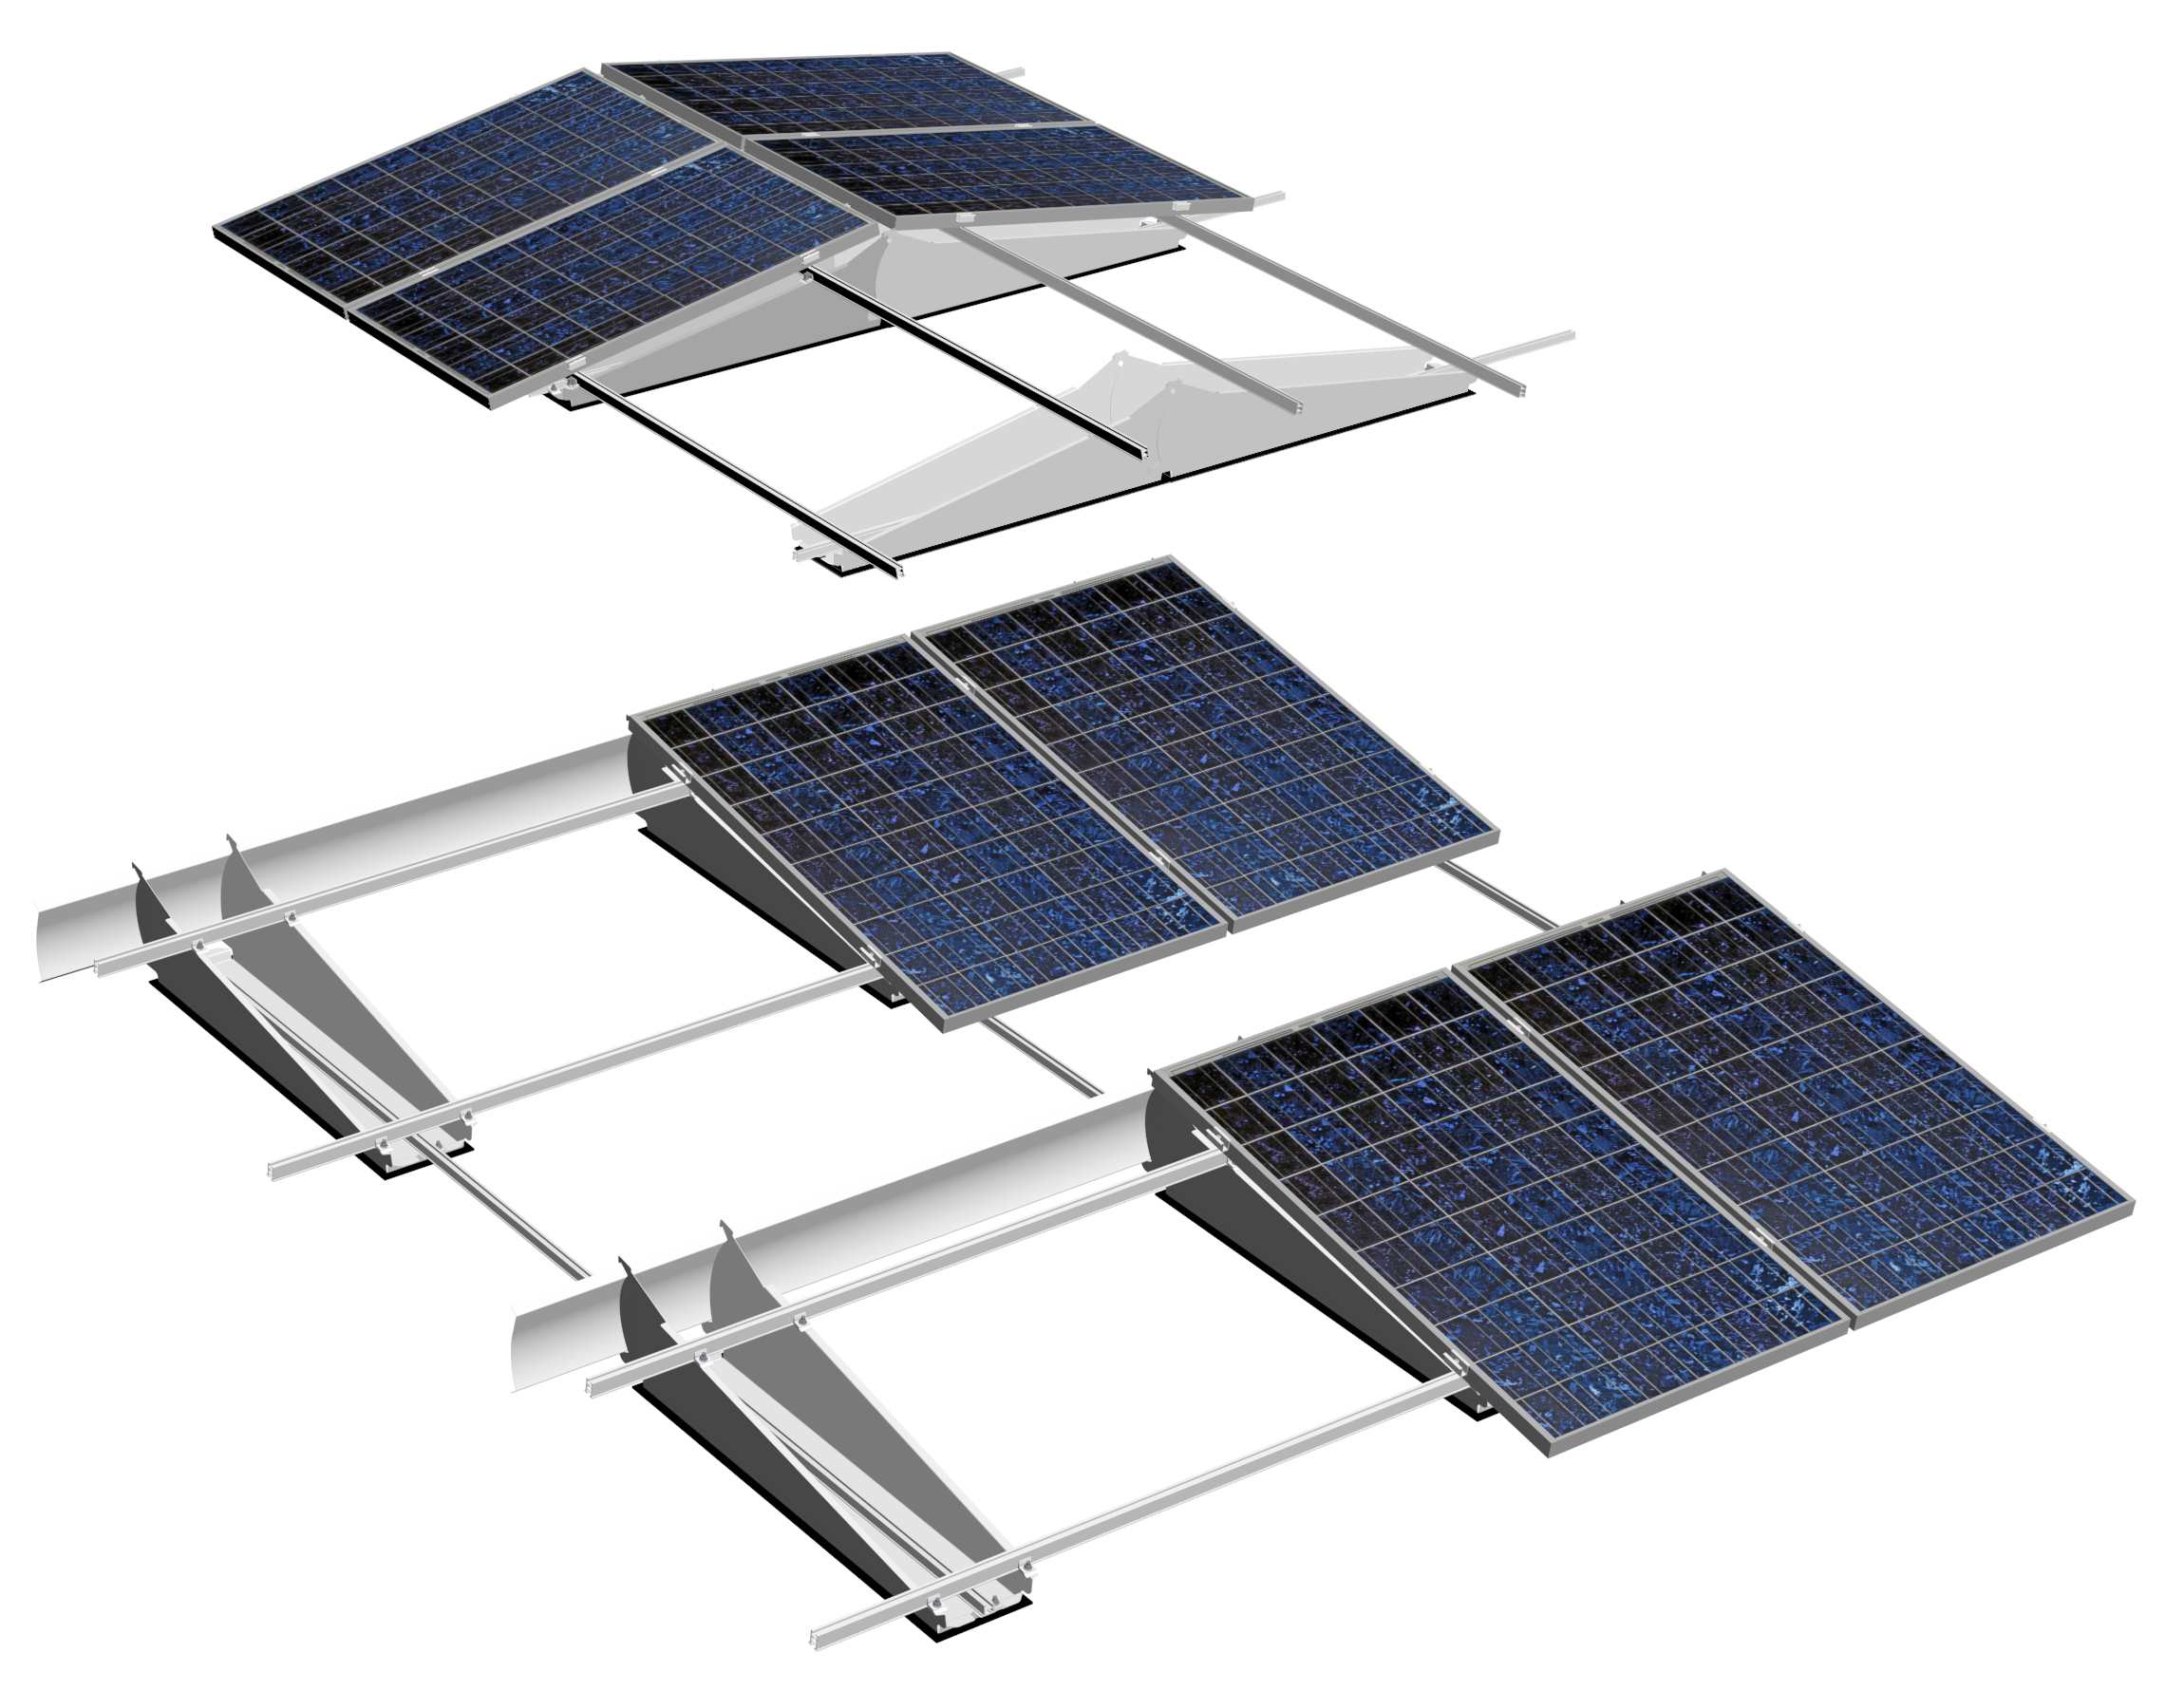 How to install a solar system - Easy And Fast Installation Of Large Scale Solar Power Installations With The Tric F Pro